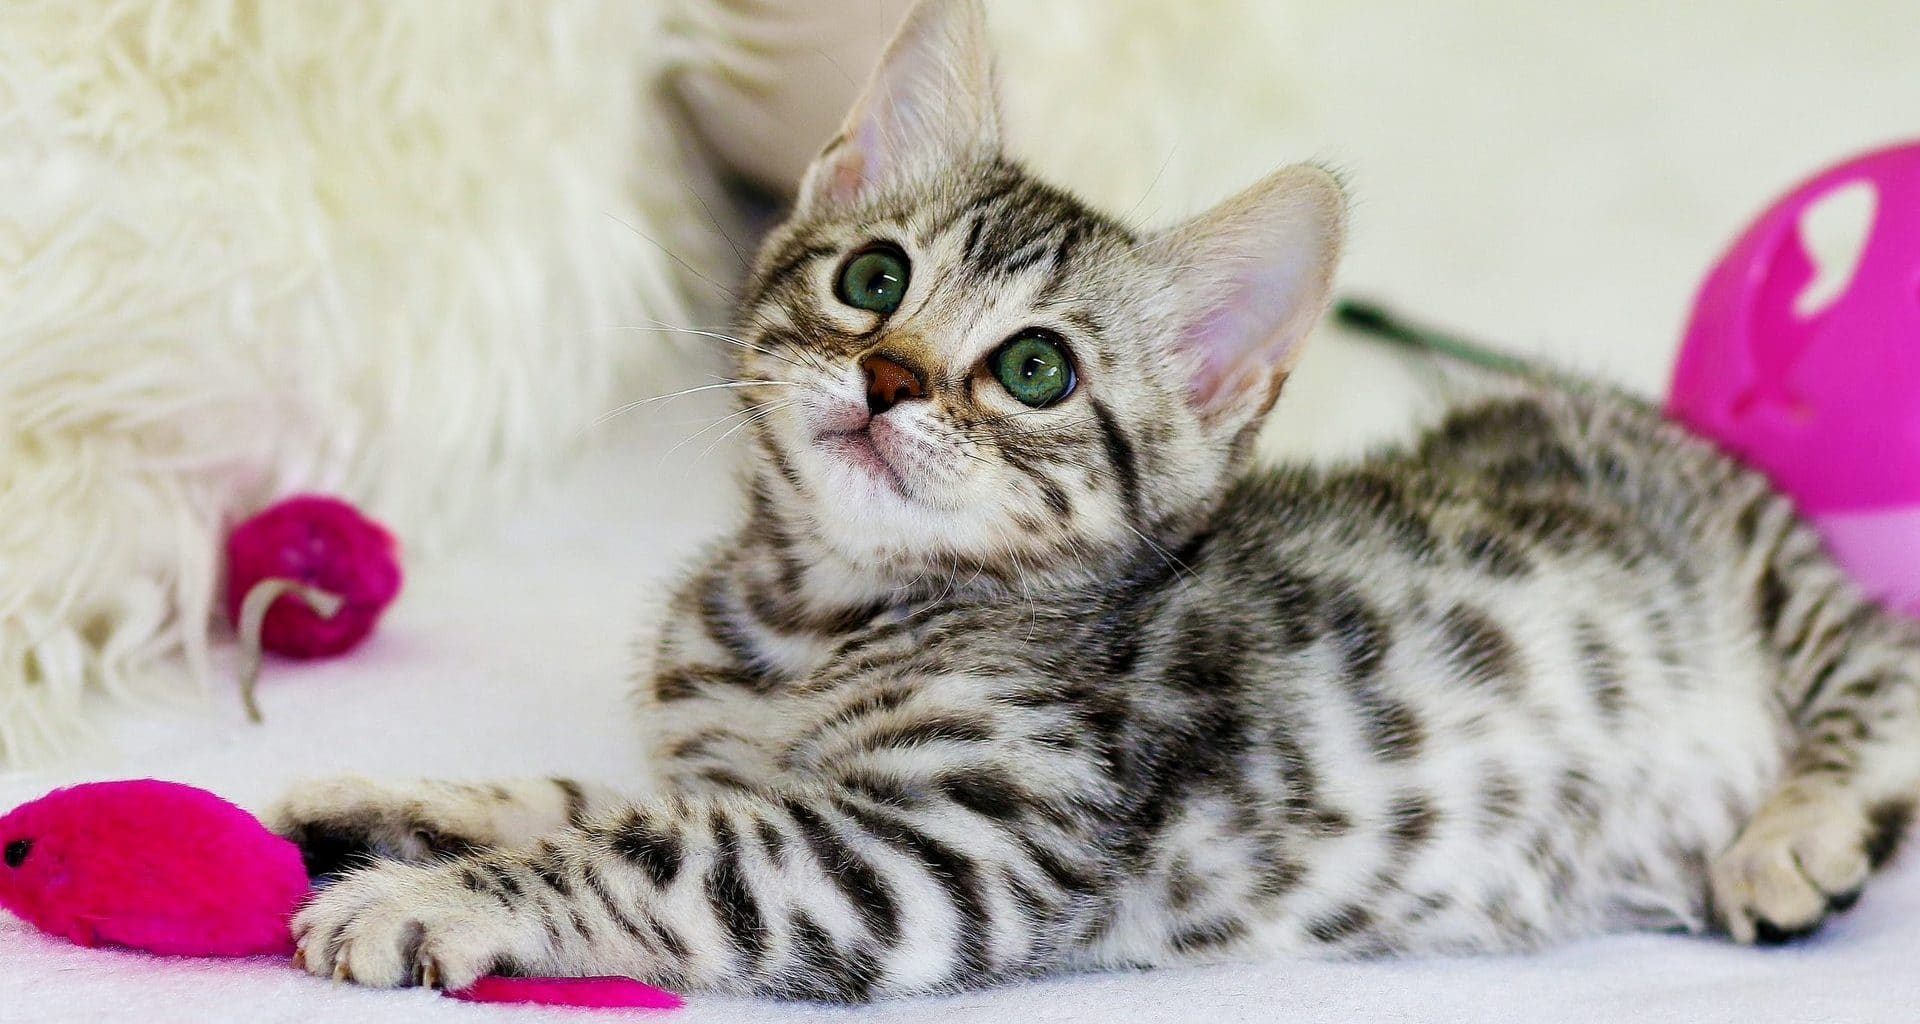 Best Gifts for Cats - Featured Image